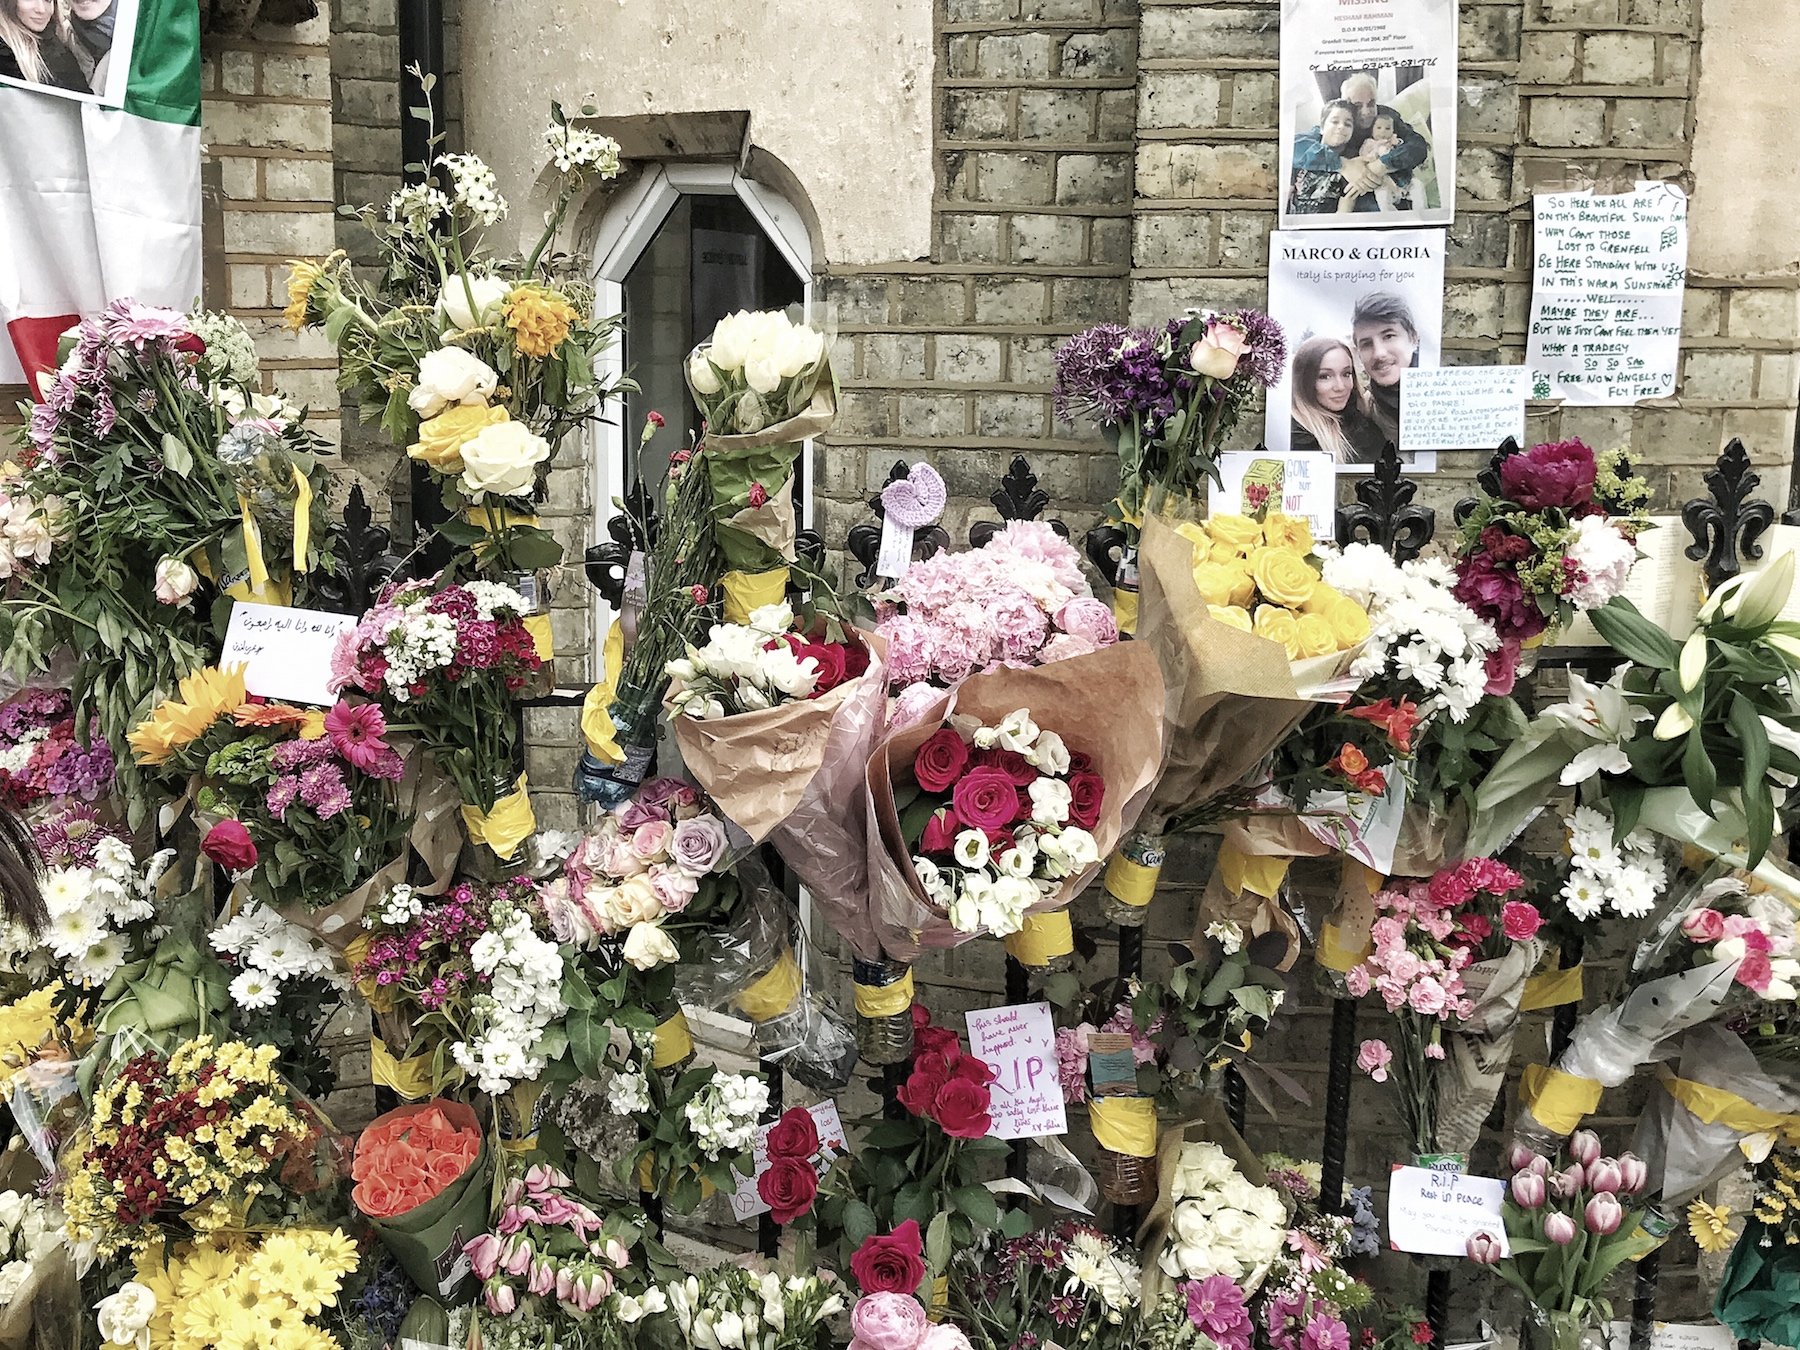 Tributes of flowers, candles and notes in the neighbourhood church by Grenfell Tower. London